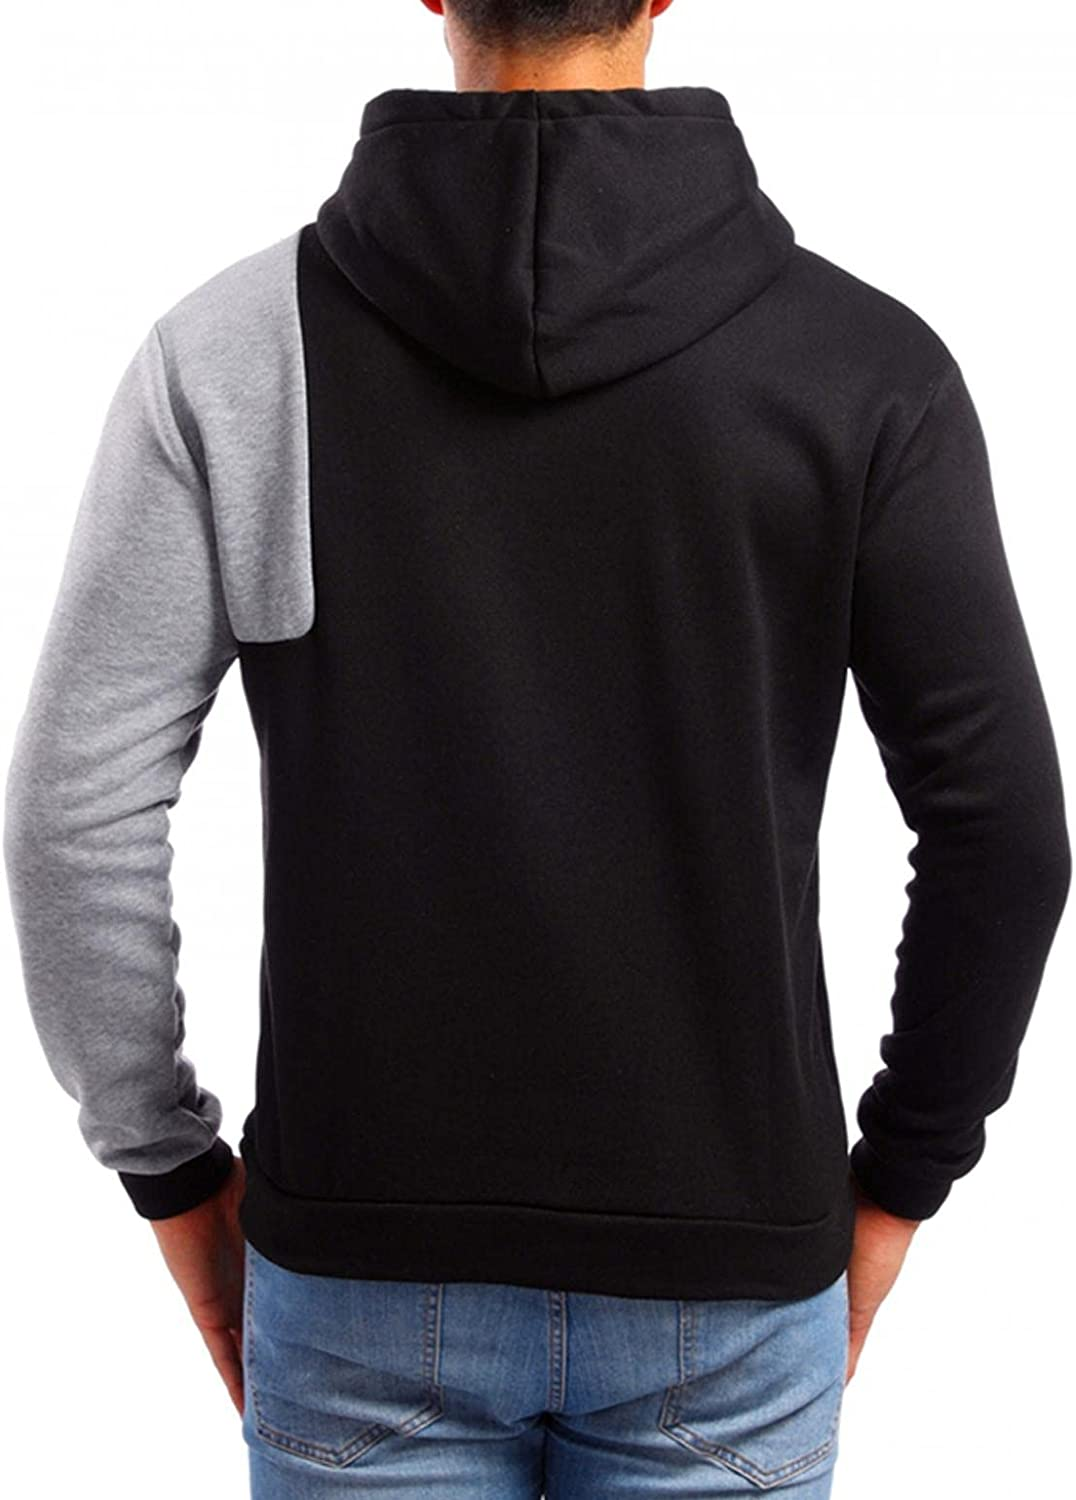 Hoodies for Men Cozy Camouflage Pullover Casual Loose Long Sleeve Sweatshirt Workout Sports Sweater Hoodies